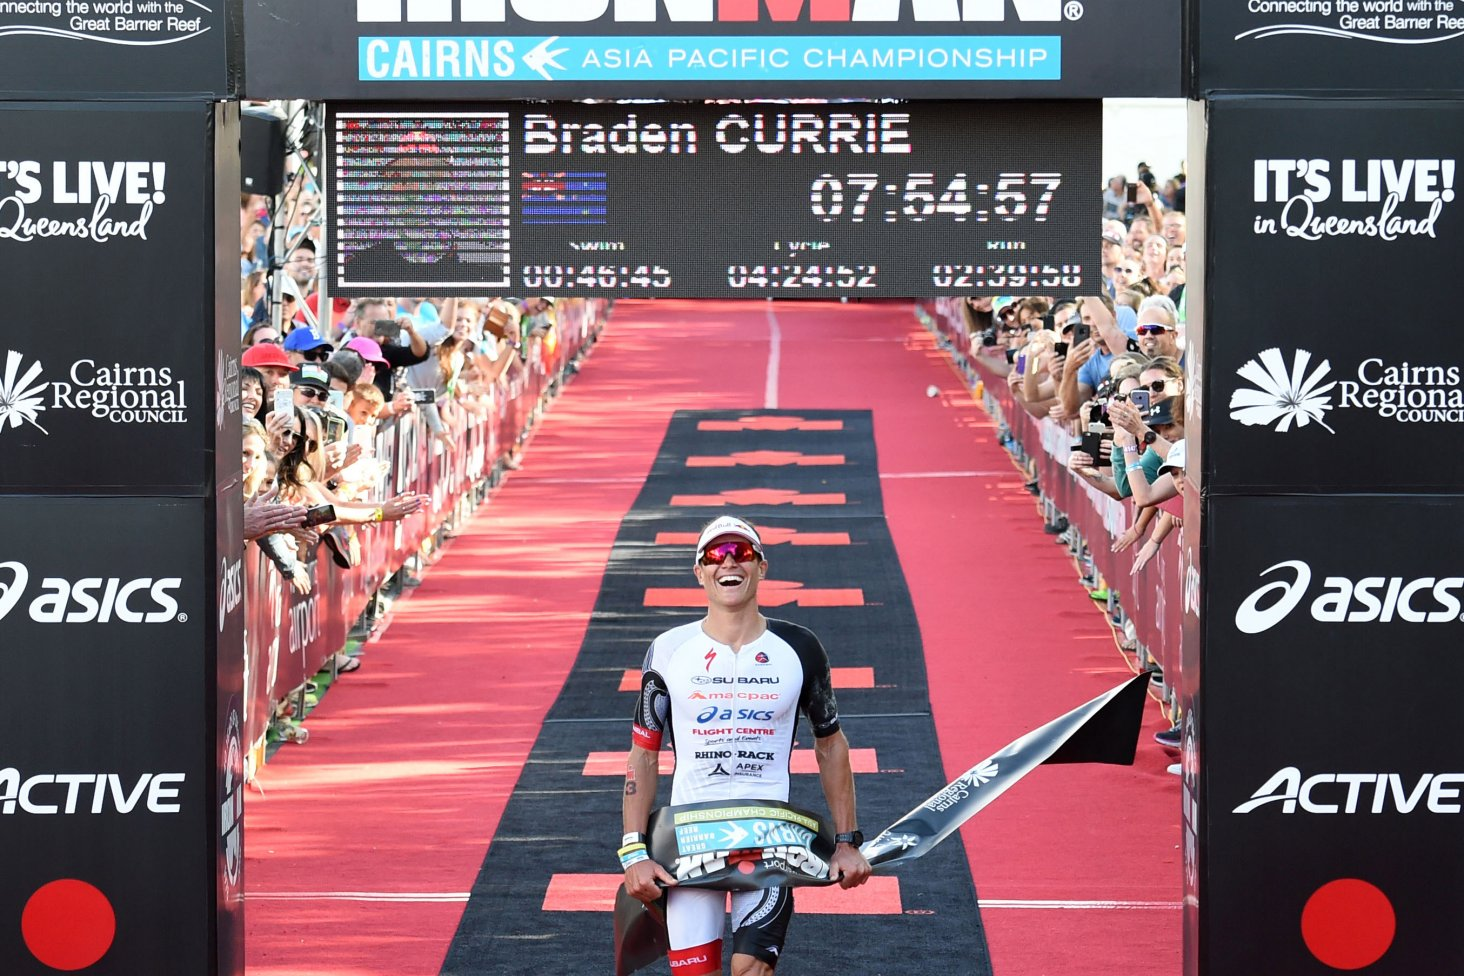 Braden Currie at the finish line as he wins Cairns Ironman 2018. Photo Credit Korupt Vision